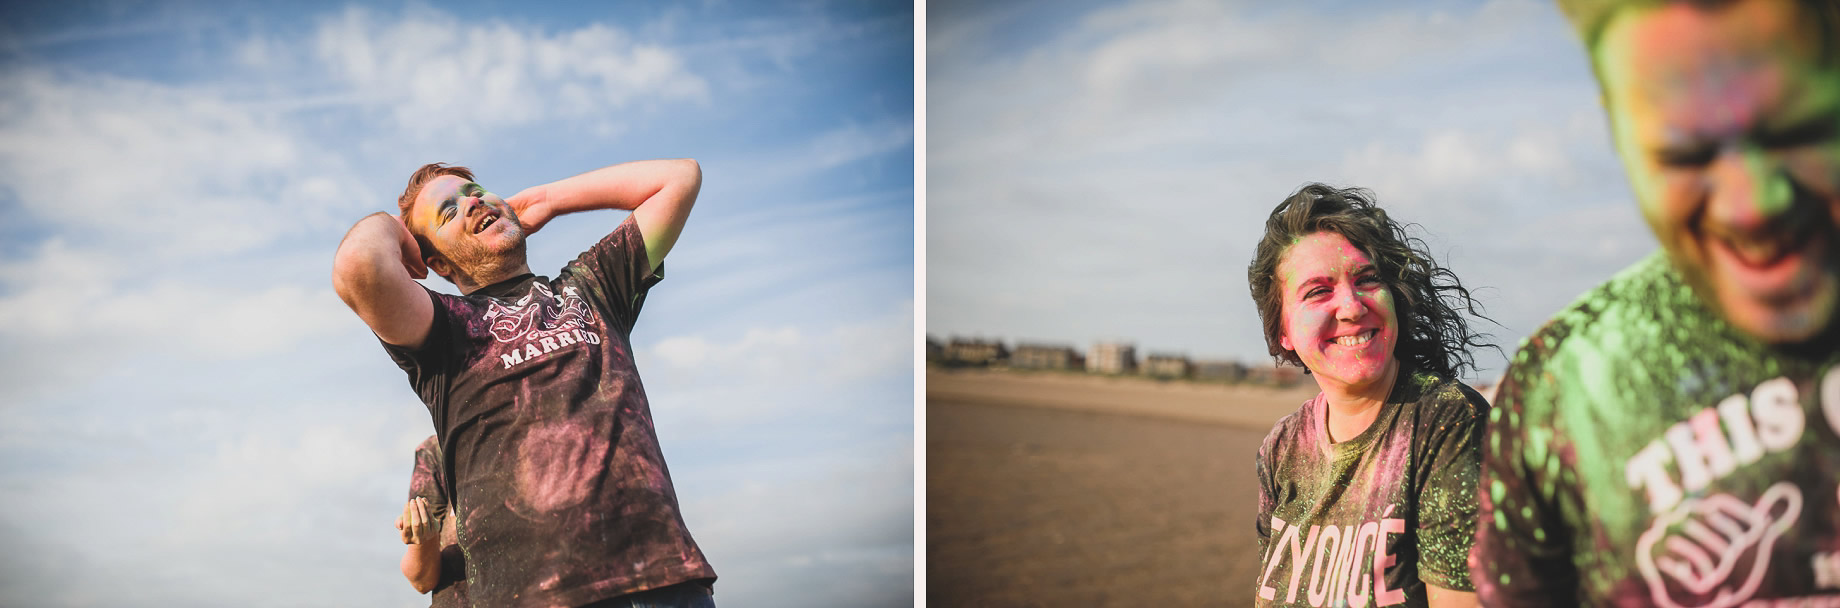 Becky and John's Pre-Wedding Shoot on Lytham St Annes Beach 018